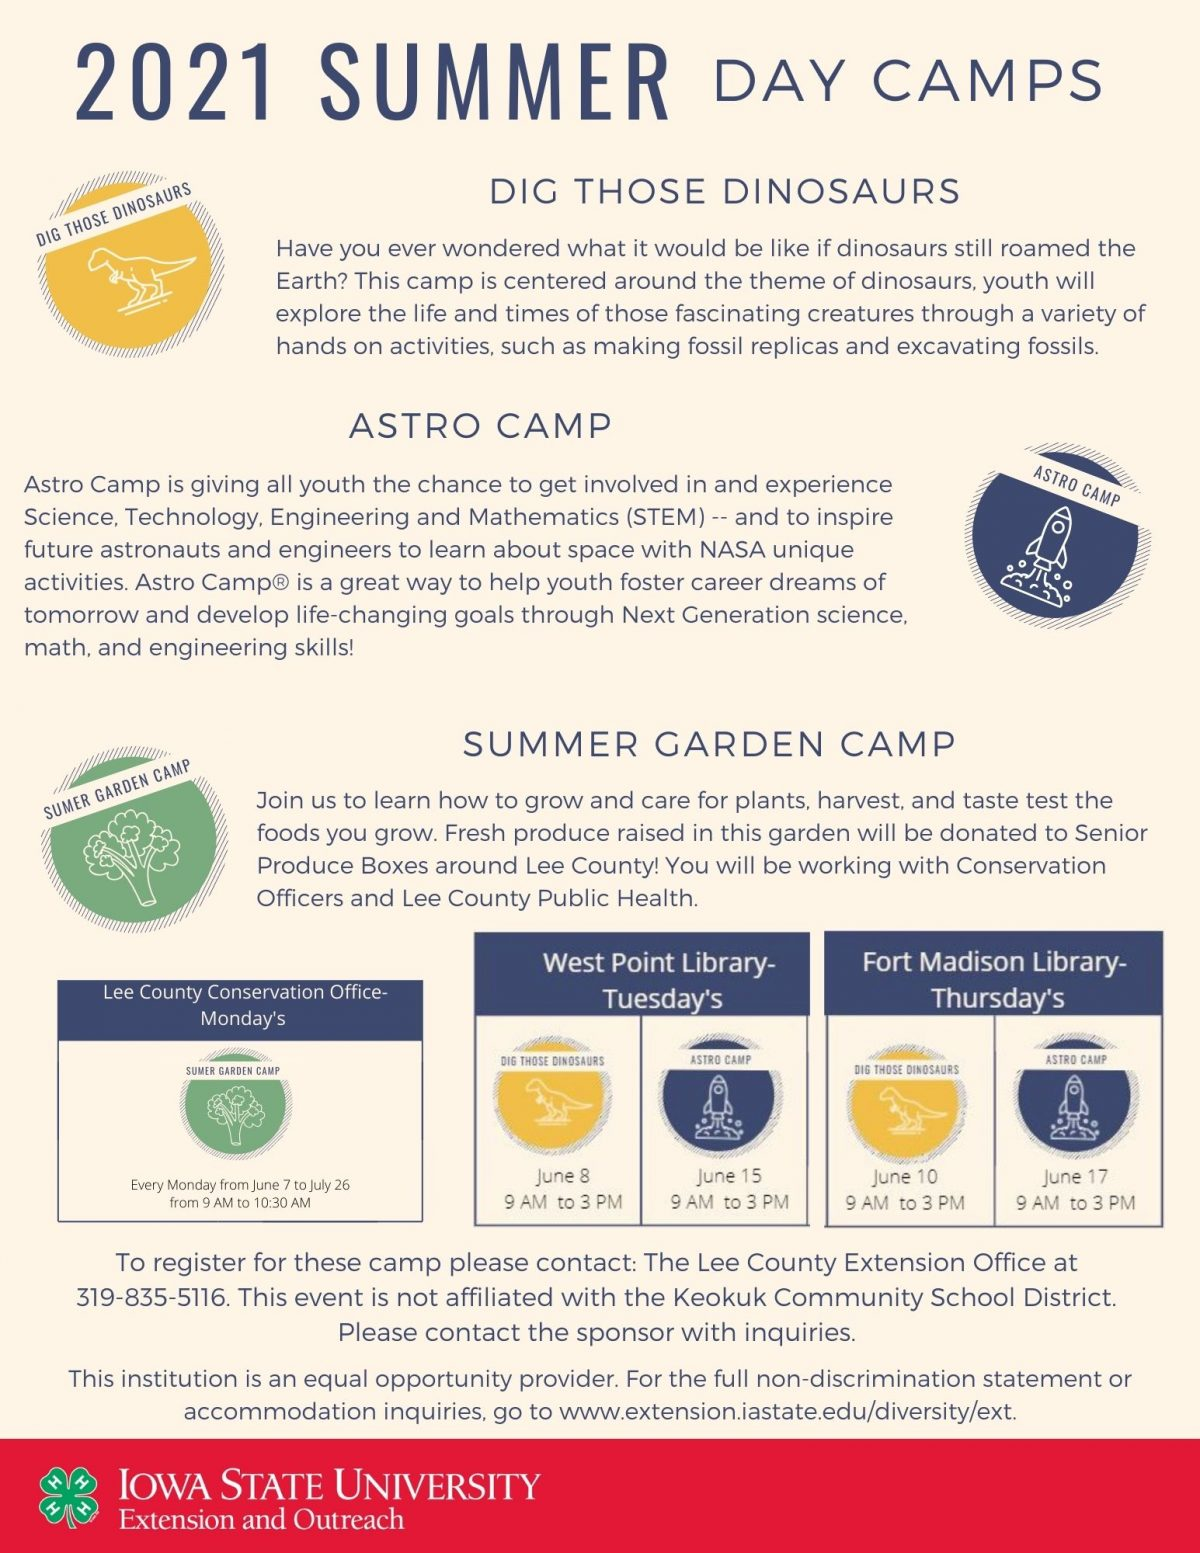 2021 Summer Day Camps